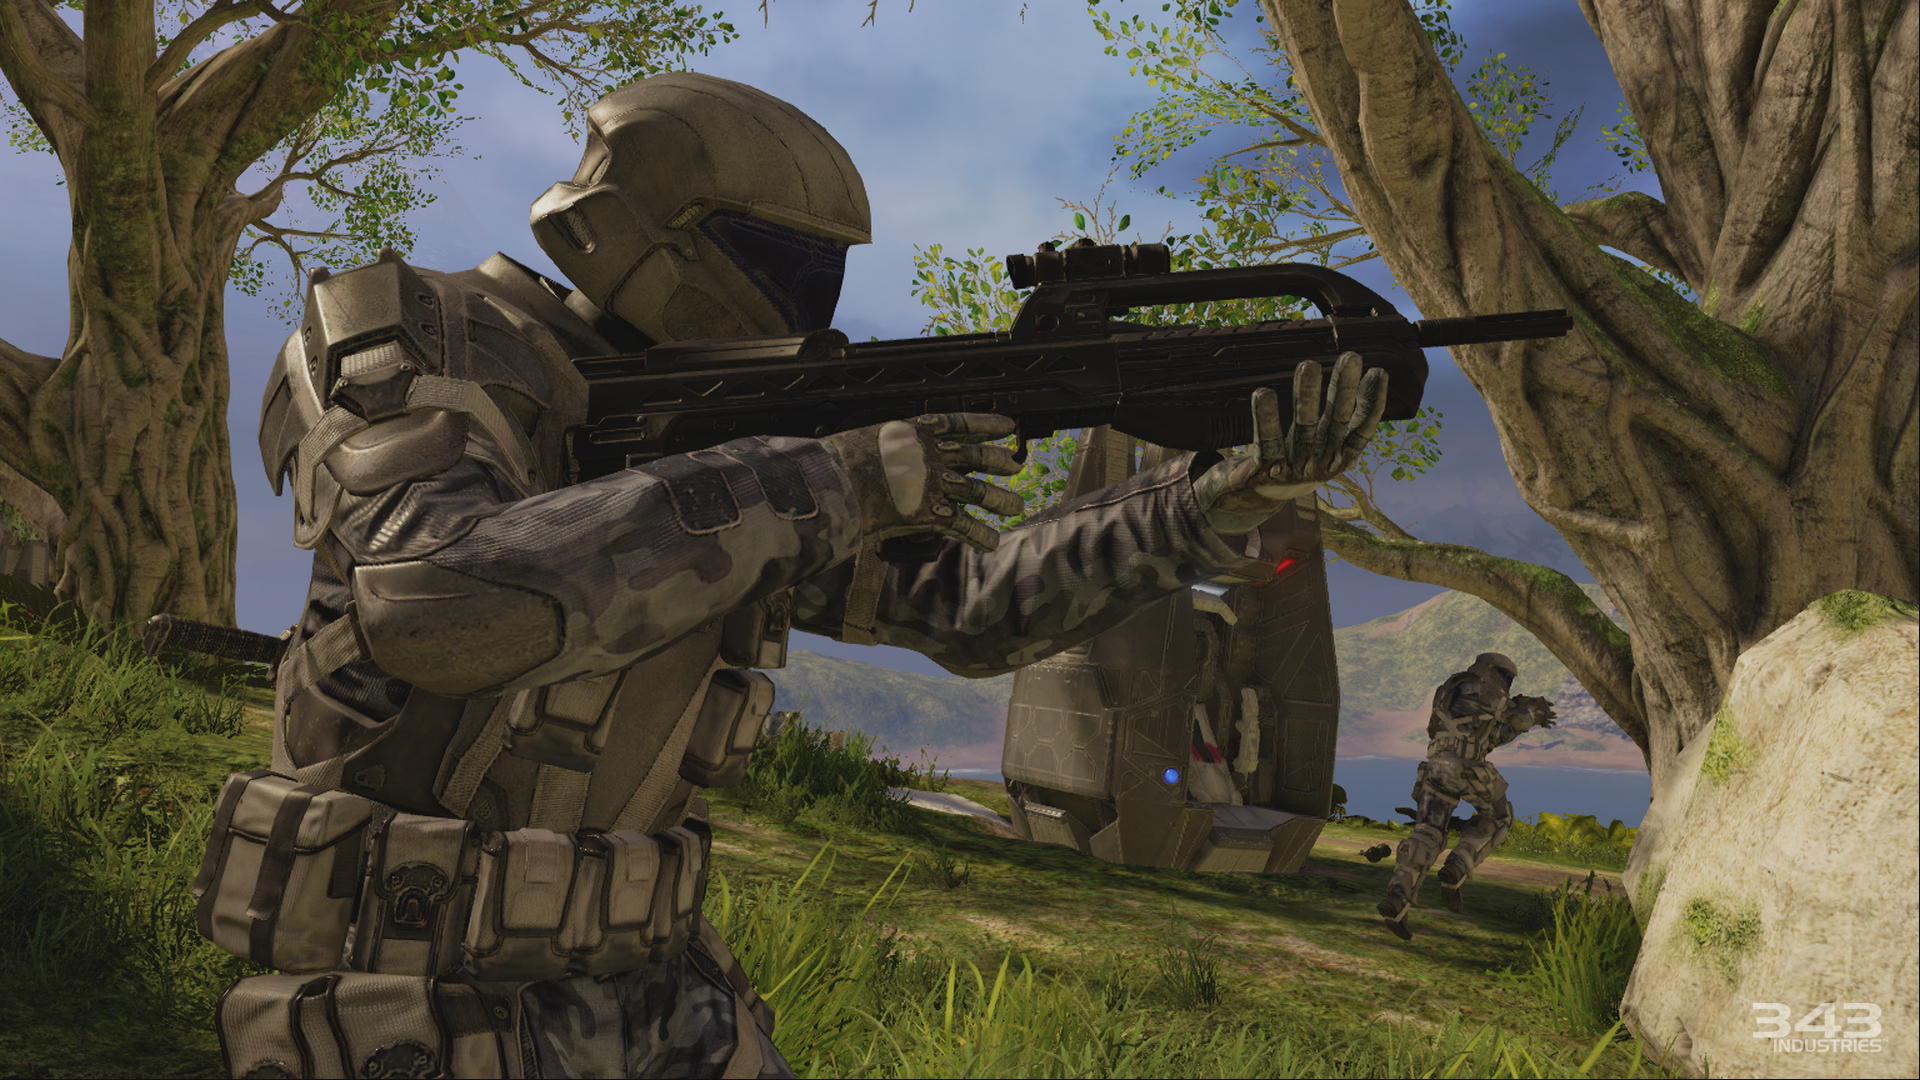 halo 2 pc matchmaking timed out Free download halo 2 pc game full version ripped halo 2 is an awesome first person shooter game that works fine on windows xp, 7 and 8.